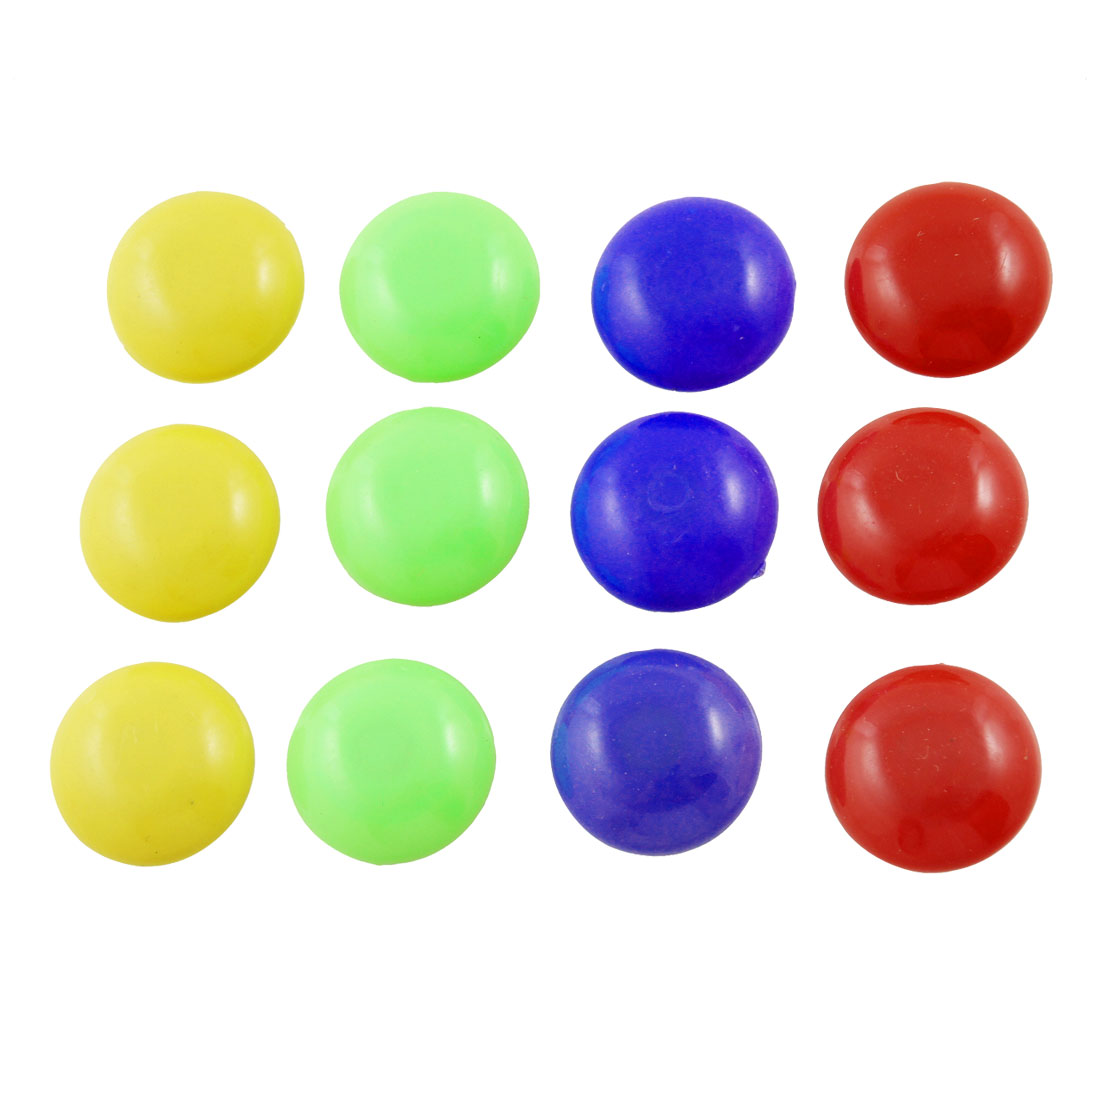 Office Round Button Shaped Whiteboard Magnets 12 Pcs